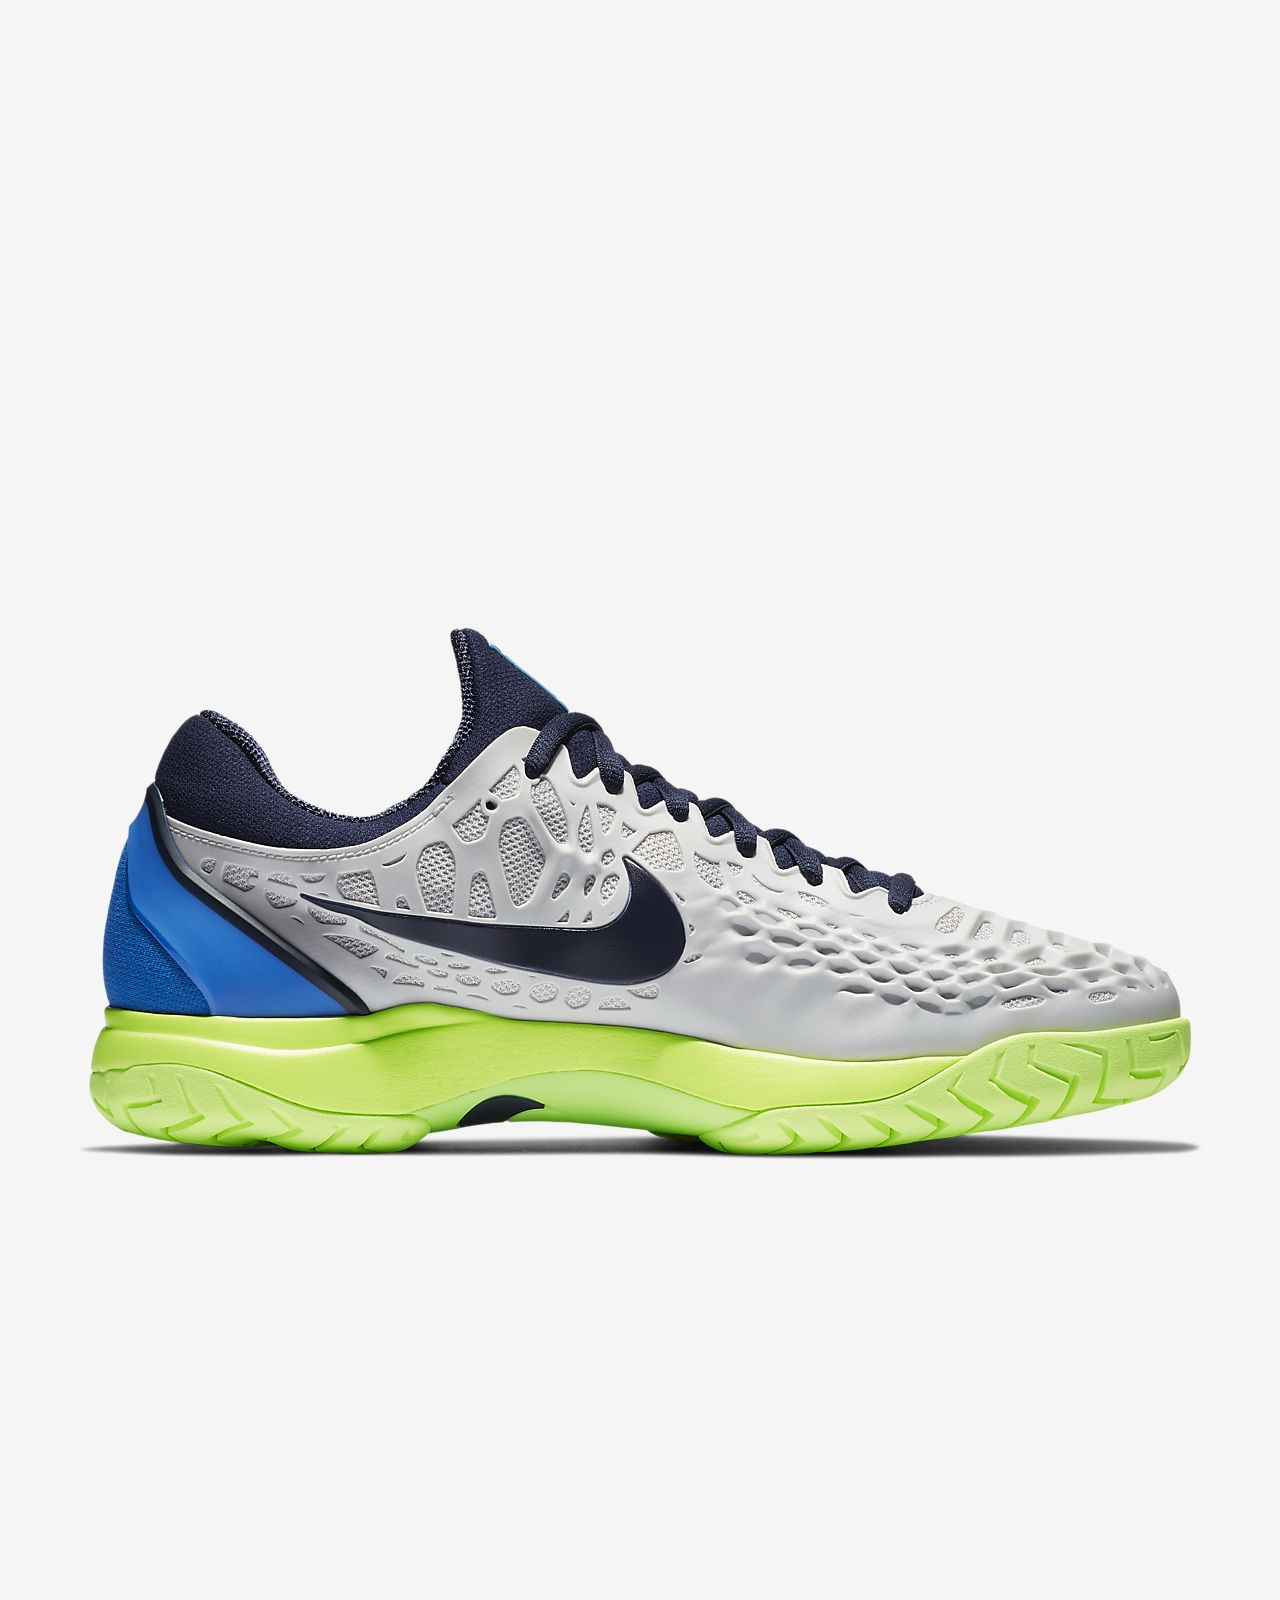 9ae6b280603 NikeCourt Zoom Cage 3 Men s Hard Court Tennis Shoe. Nike.com AU